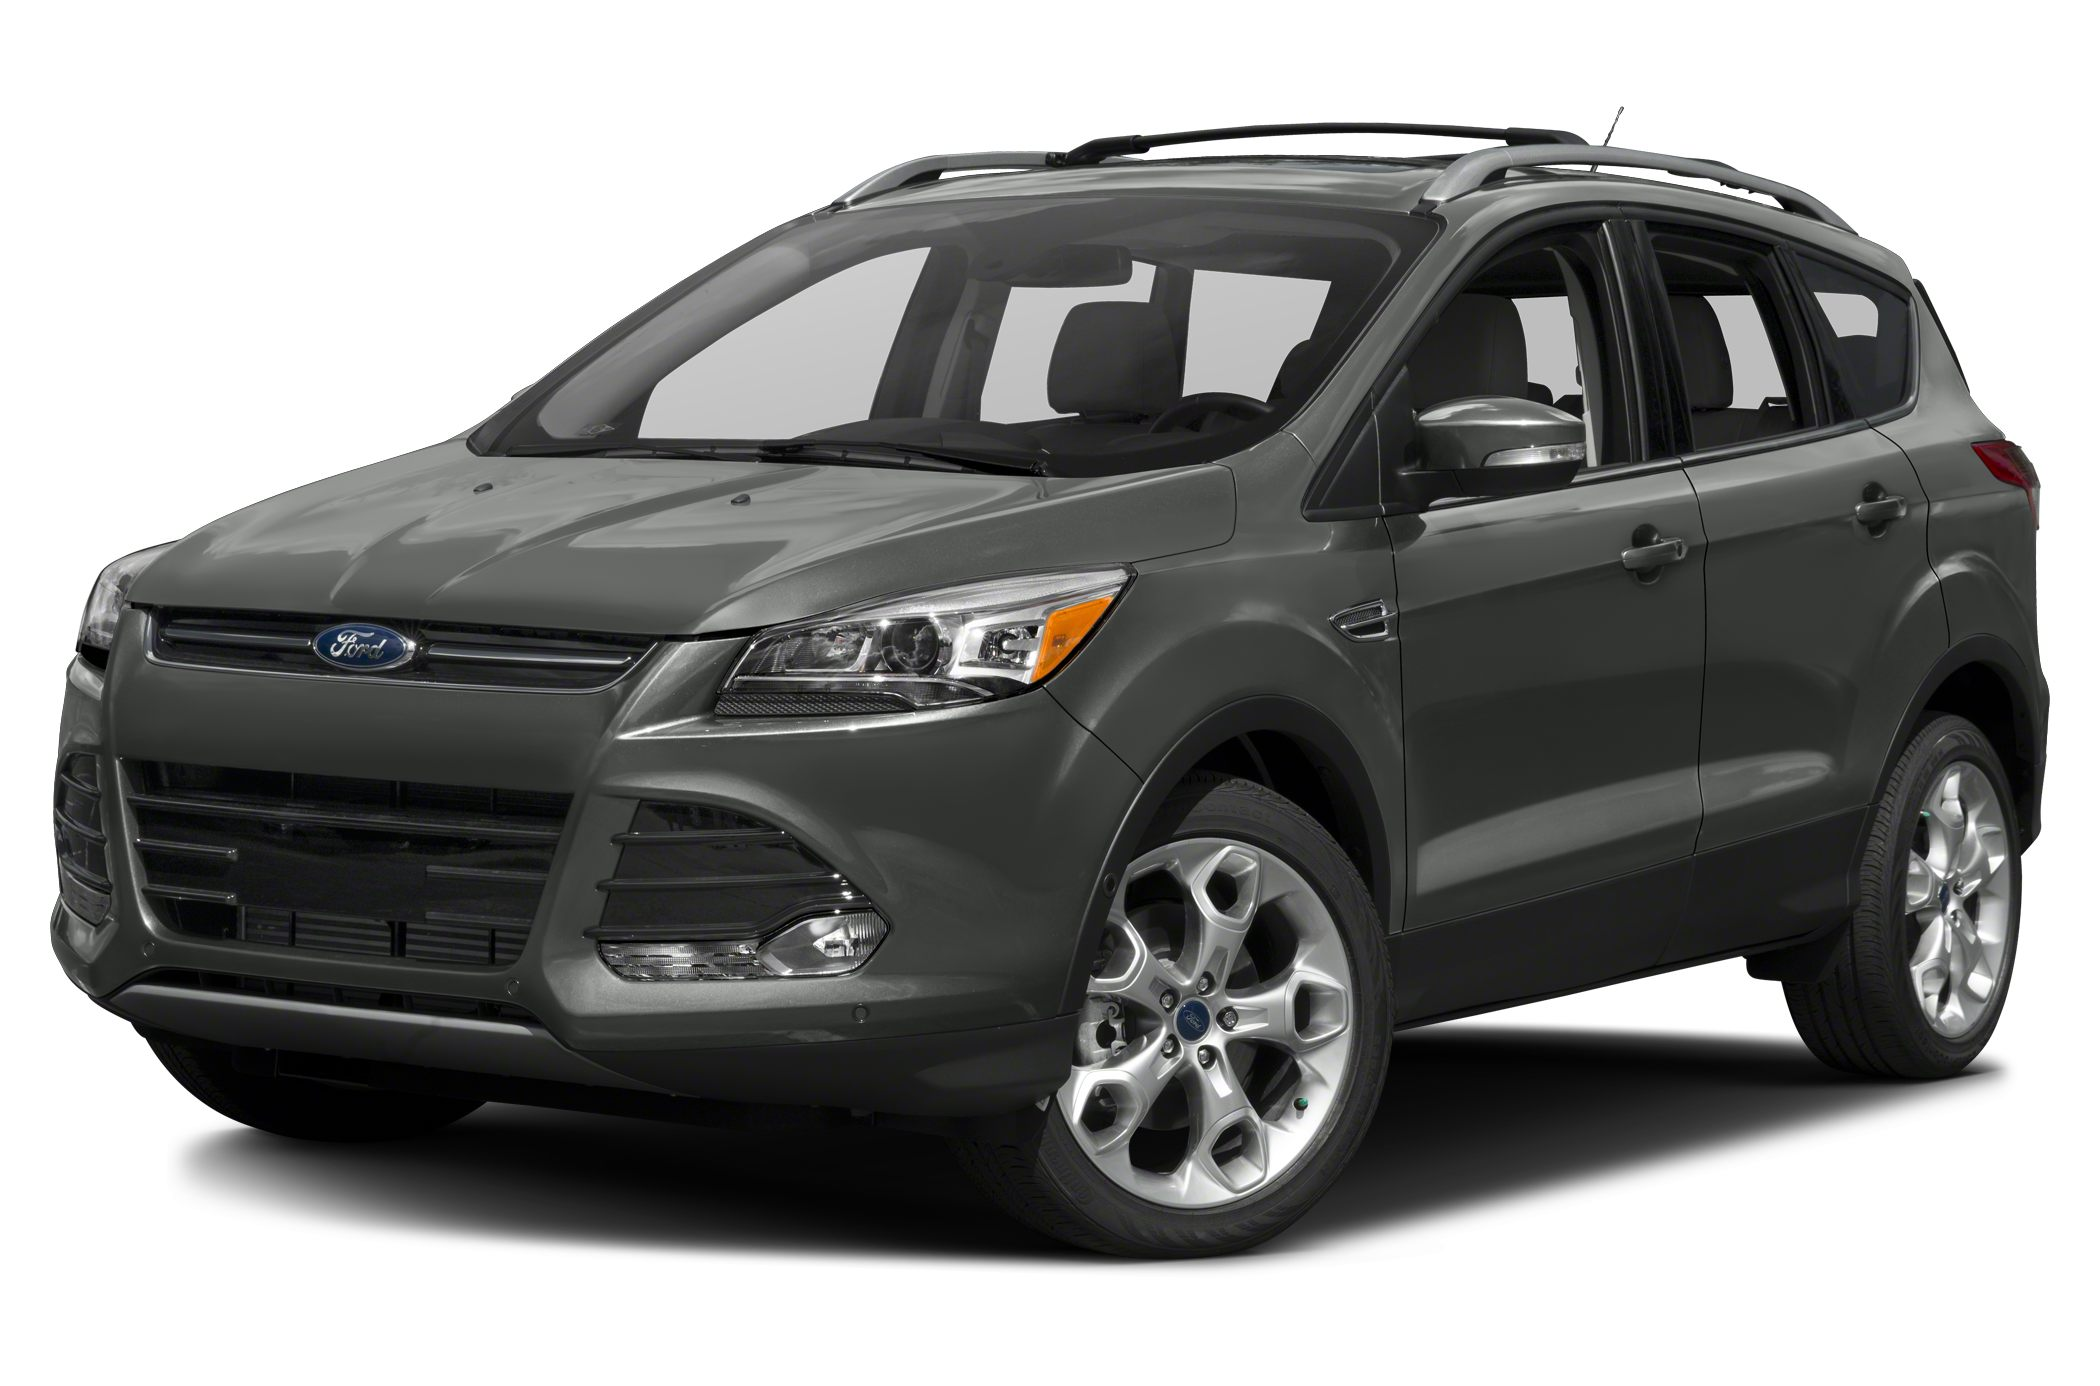 2016 Ford Escape Titanium Introducing the 2016 Ford Escape Youll appreciate its safety and conve